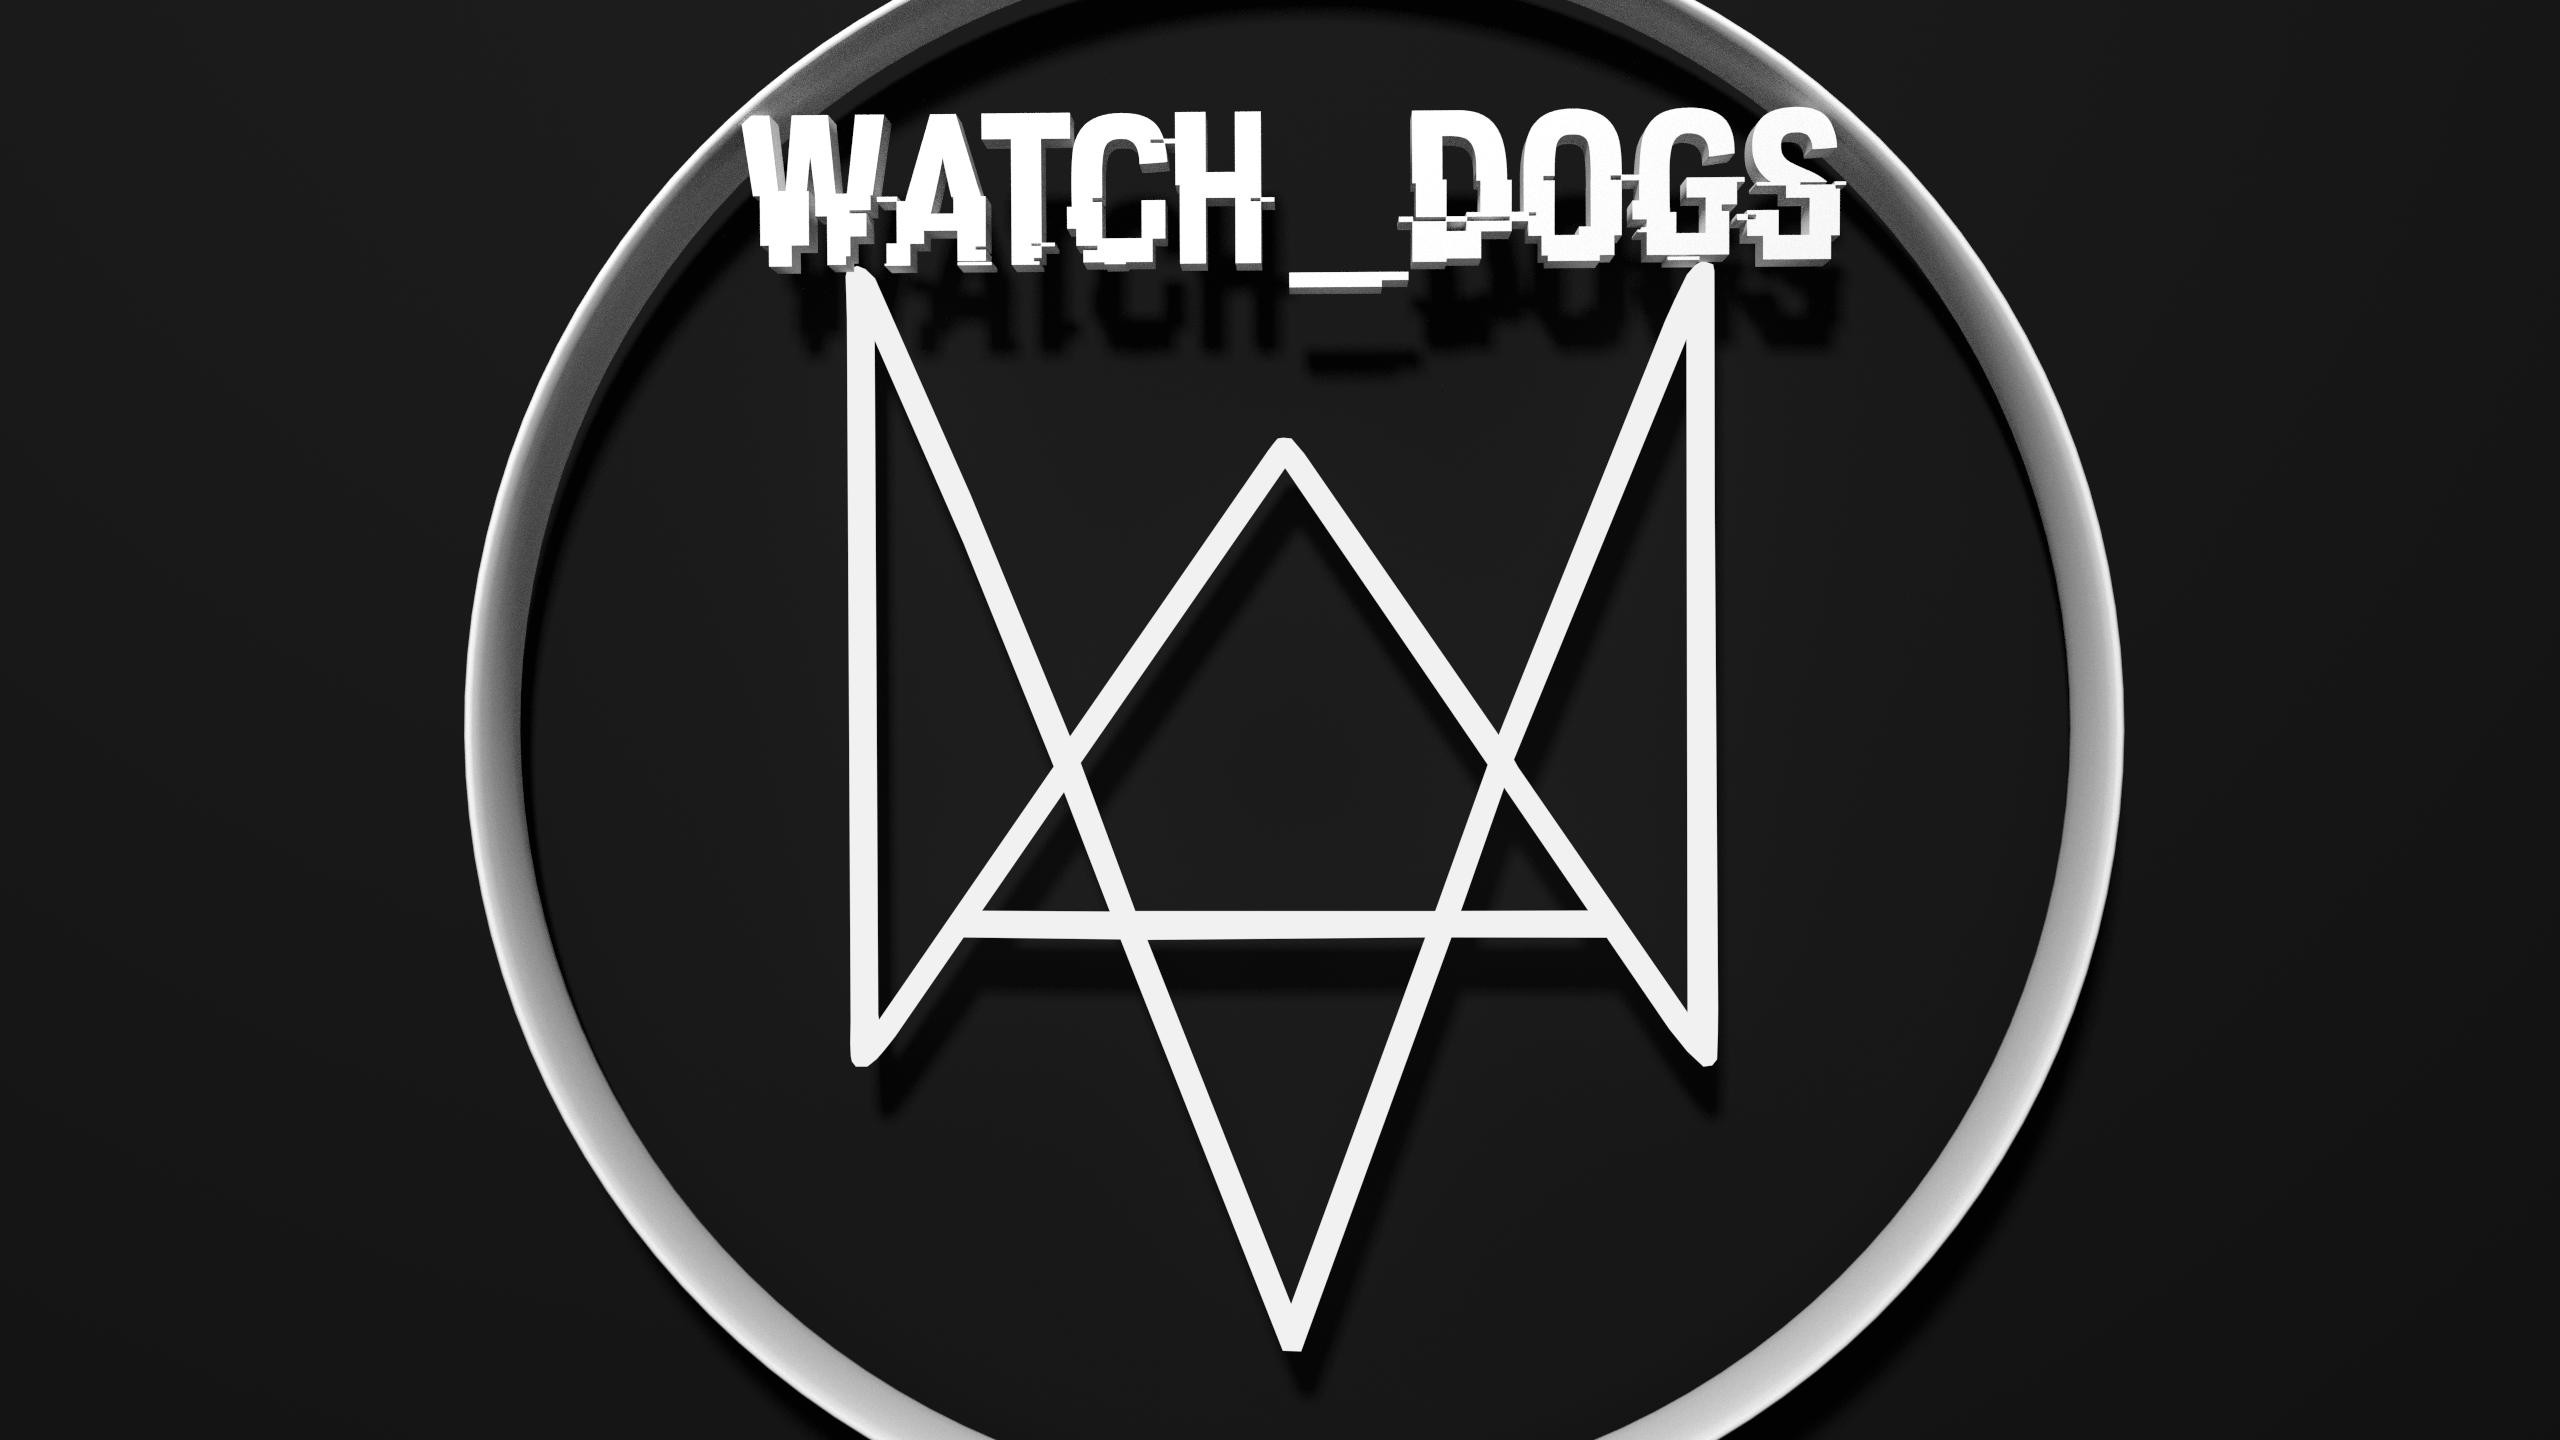 WD1I did this Watch Dogs wallpaper a while back! hope you like it!